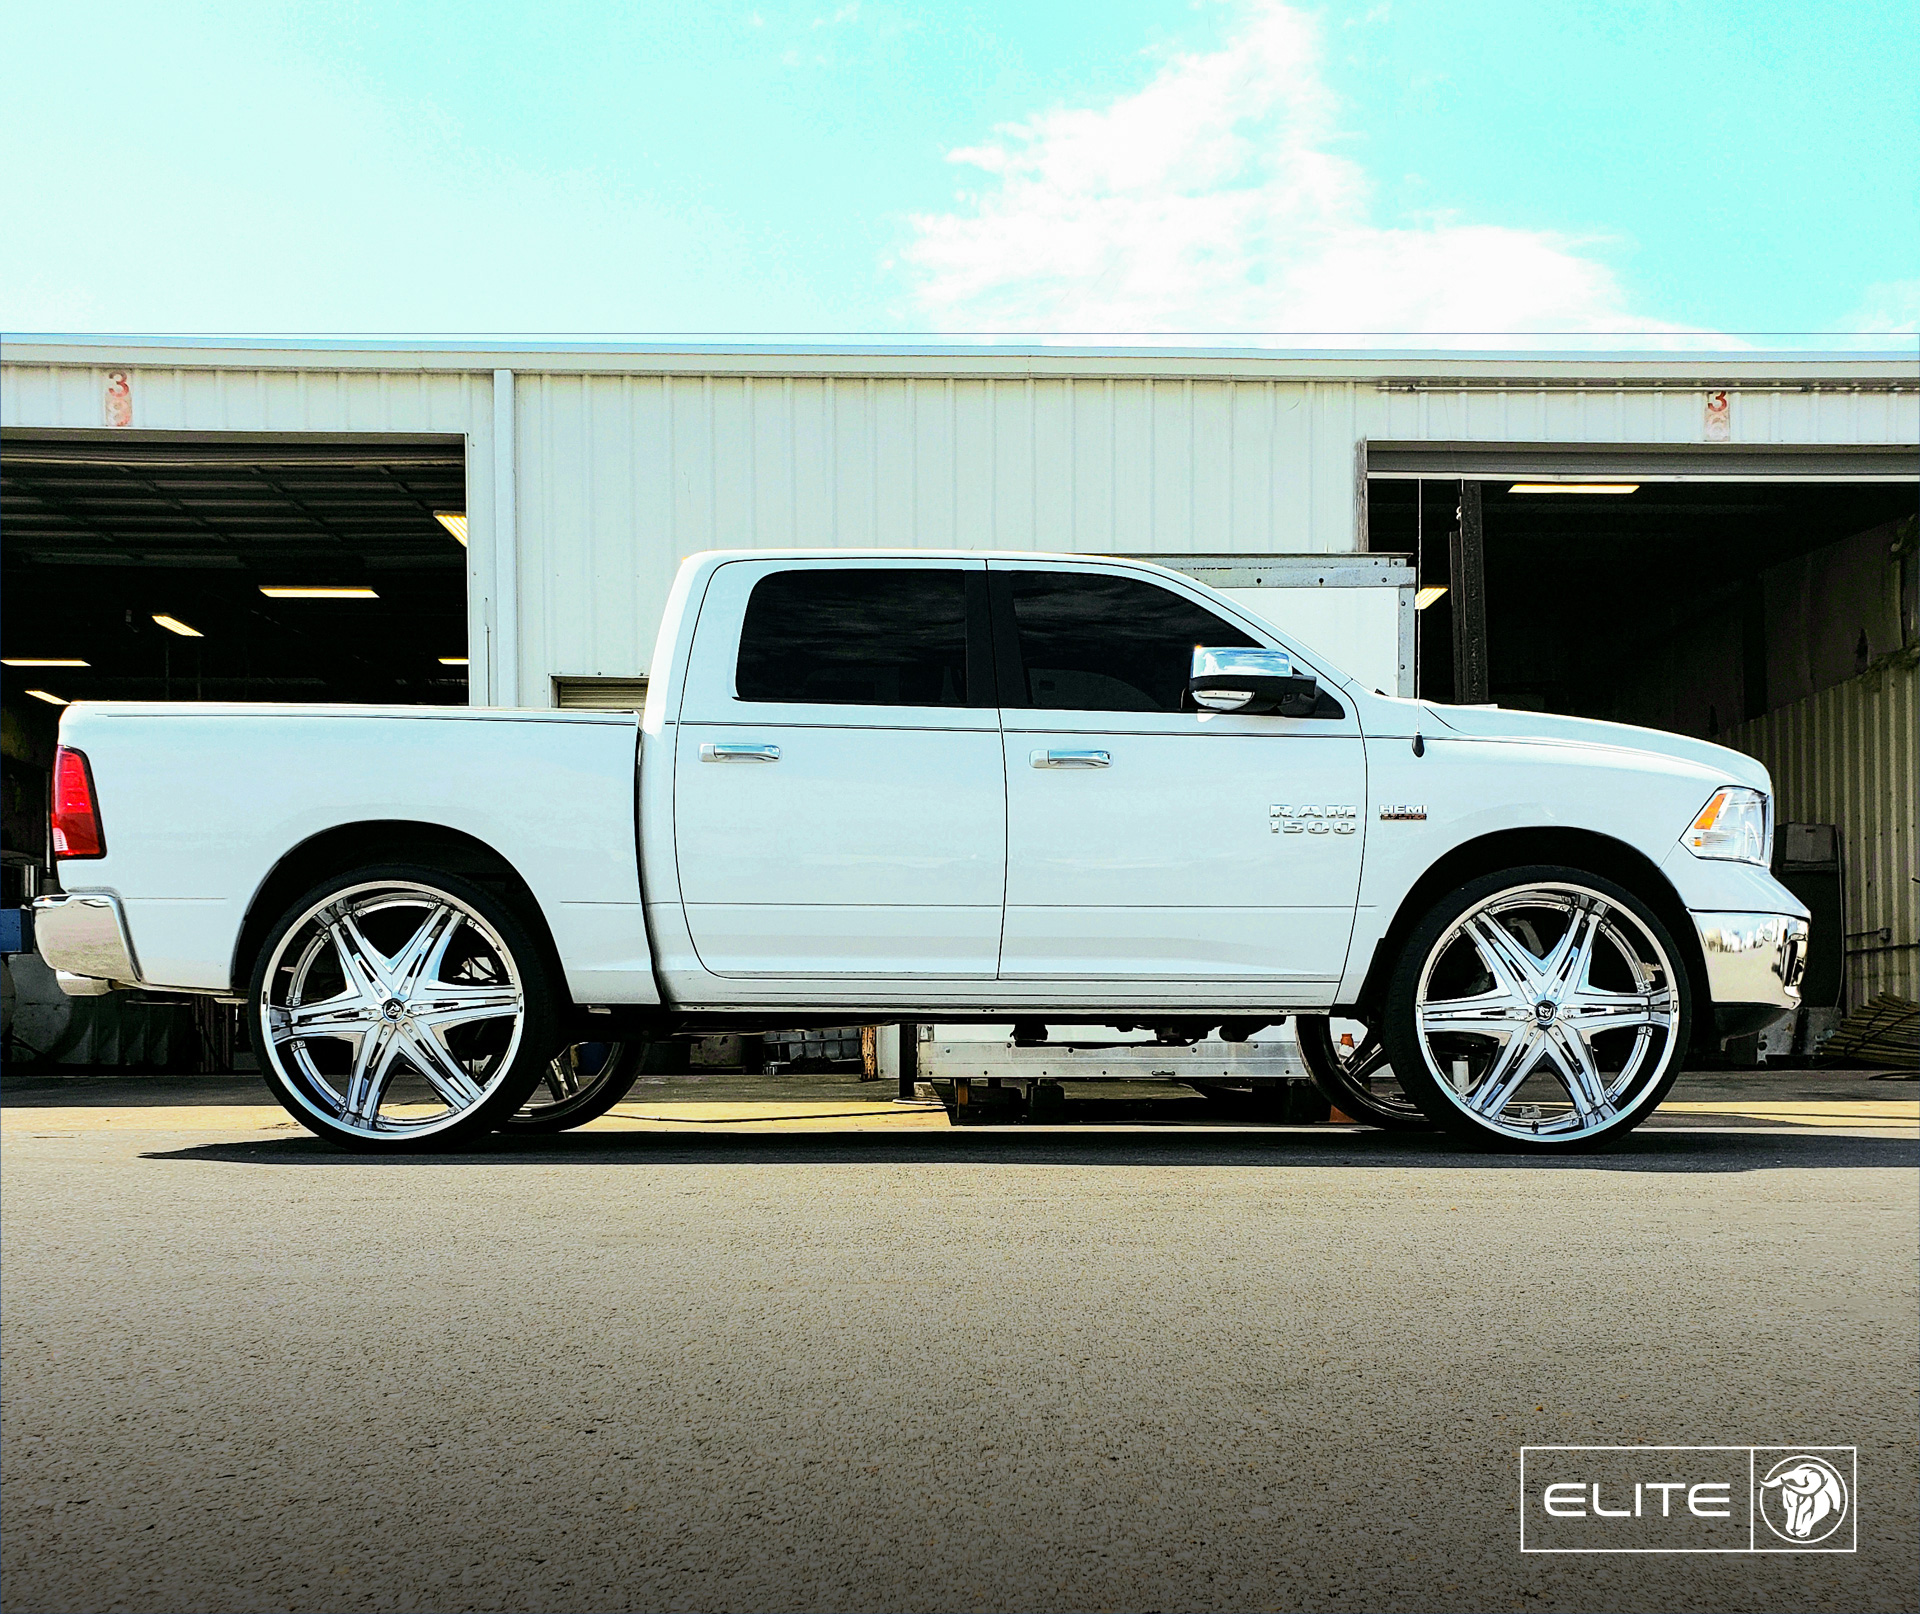 Diablo Wheels - Elite on a RAM 1500 White